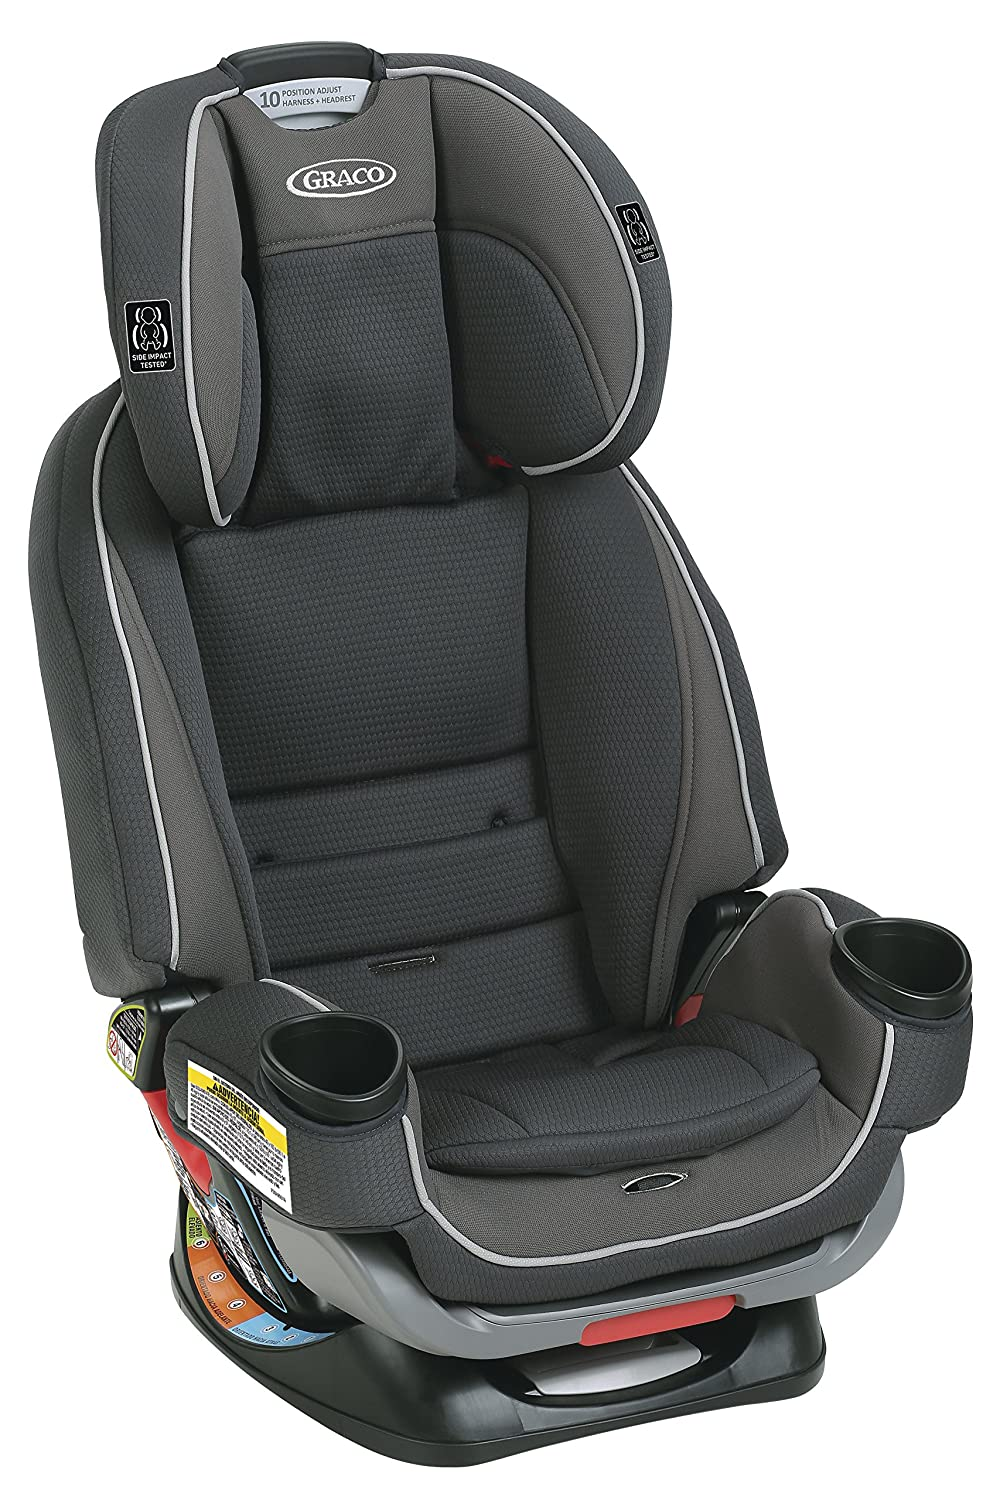 Jodie Gracobaby 4Ever Extend2Fit 4-in-1 Convertible Car Seat One Size